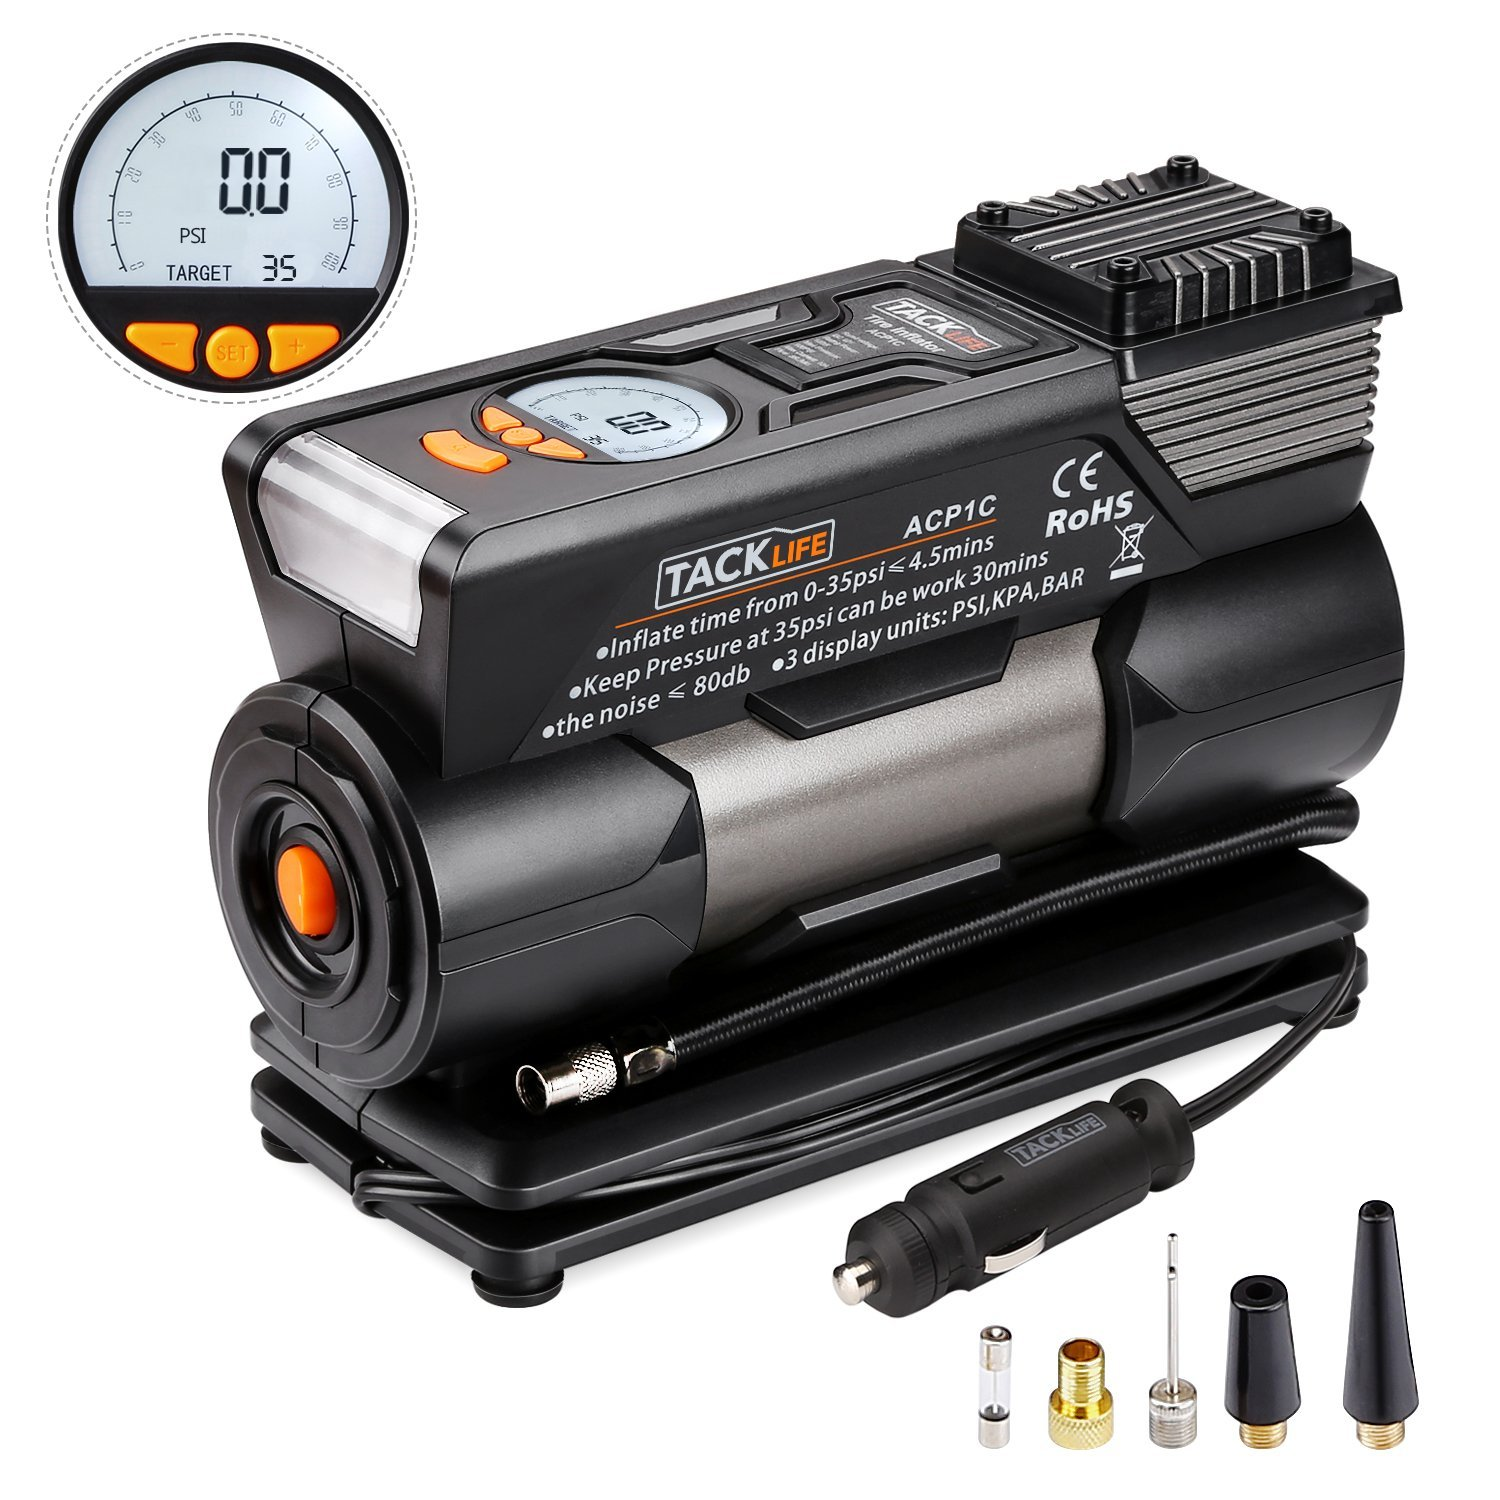 Tire Inflator, Tacklife Portable Air Compressor Pump with Low Noise 82dB, 12V MAX 140W Large Air Flow to 150PSI for security and stability, Auto Digital Car Tire Inflator Gauge